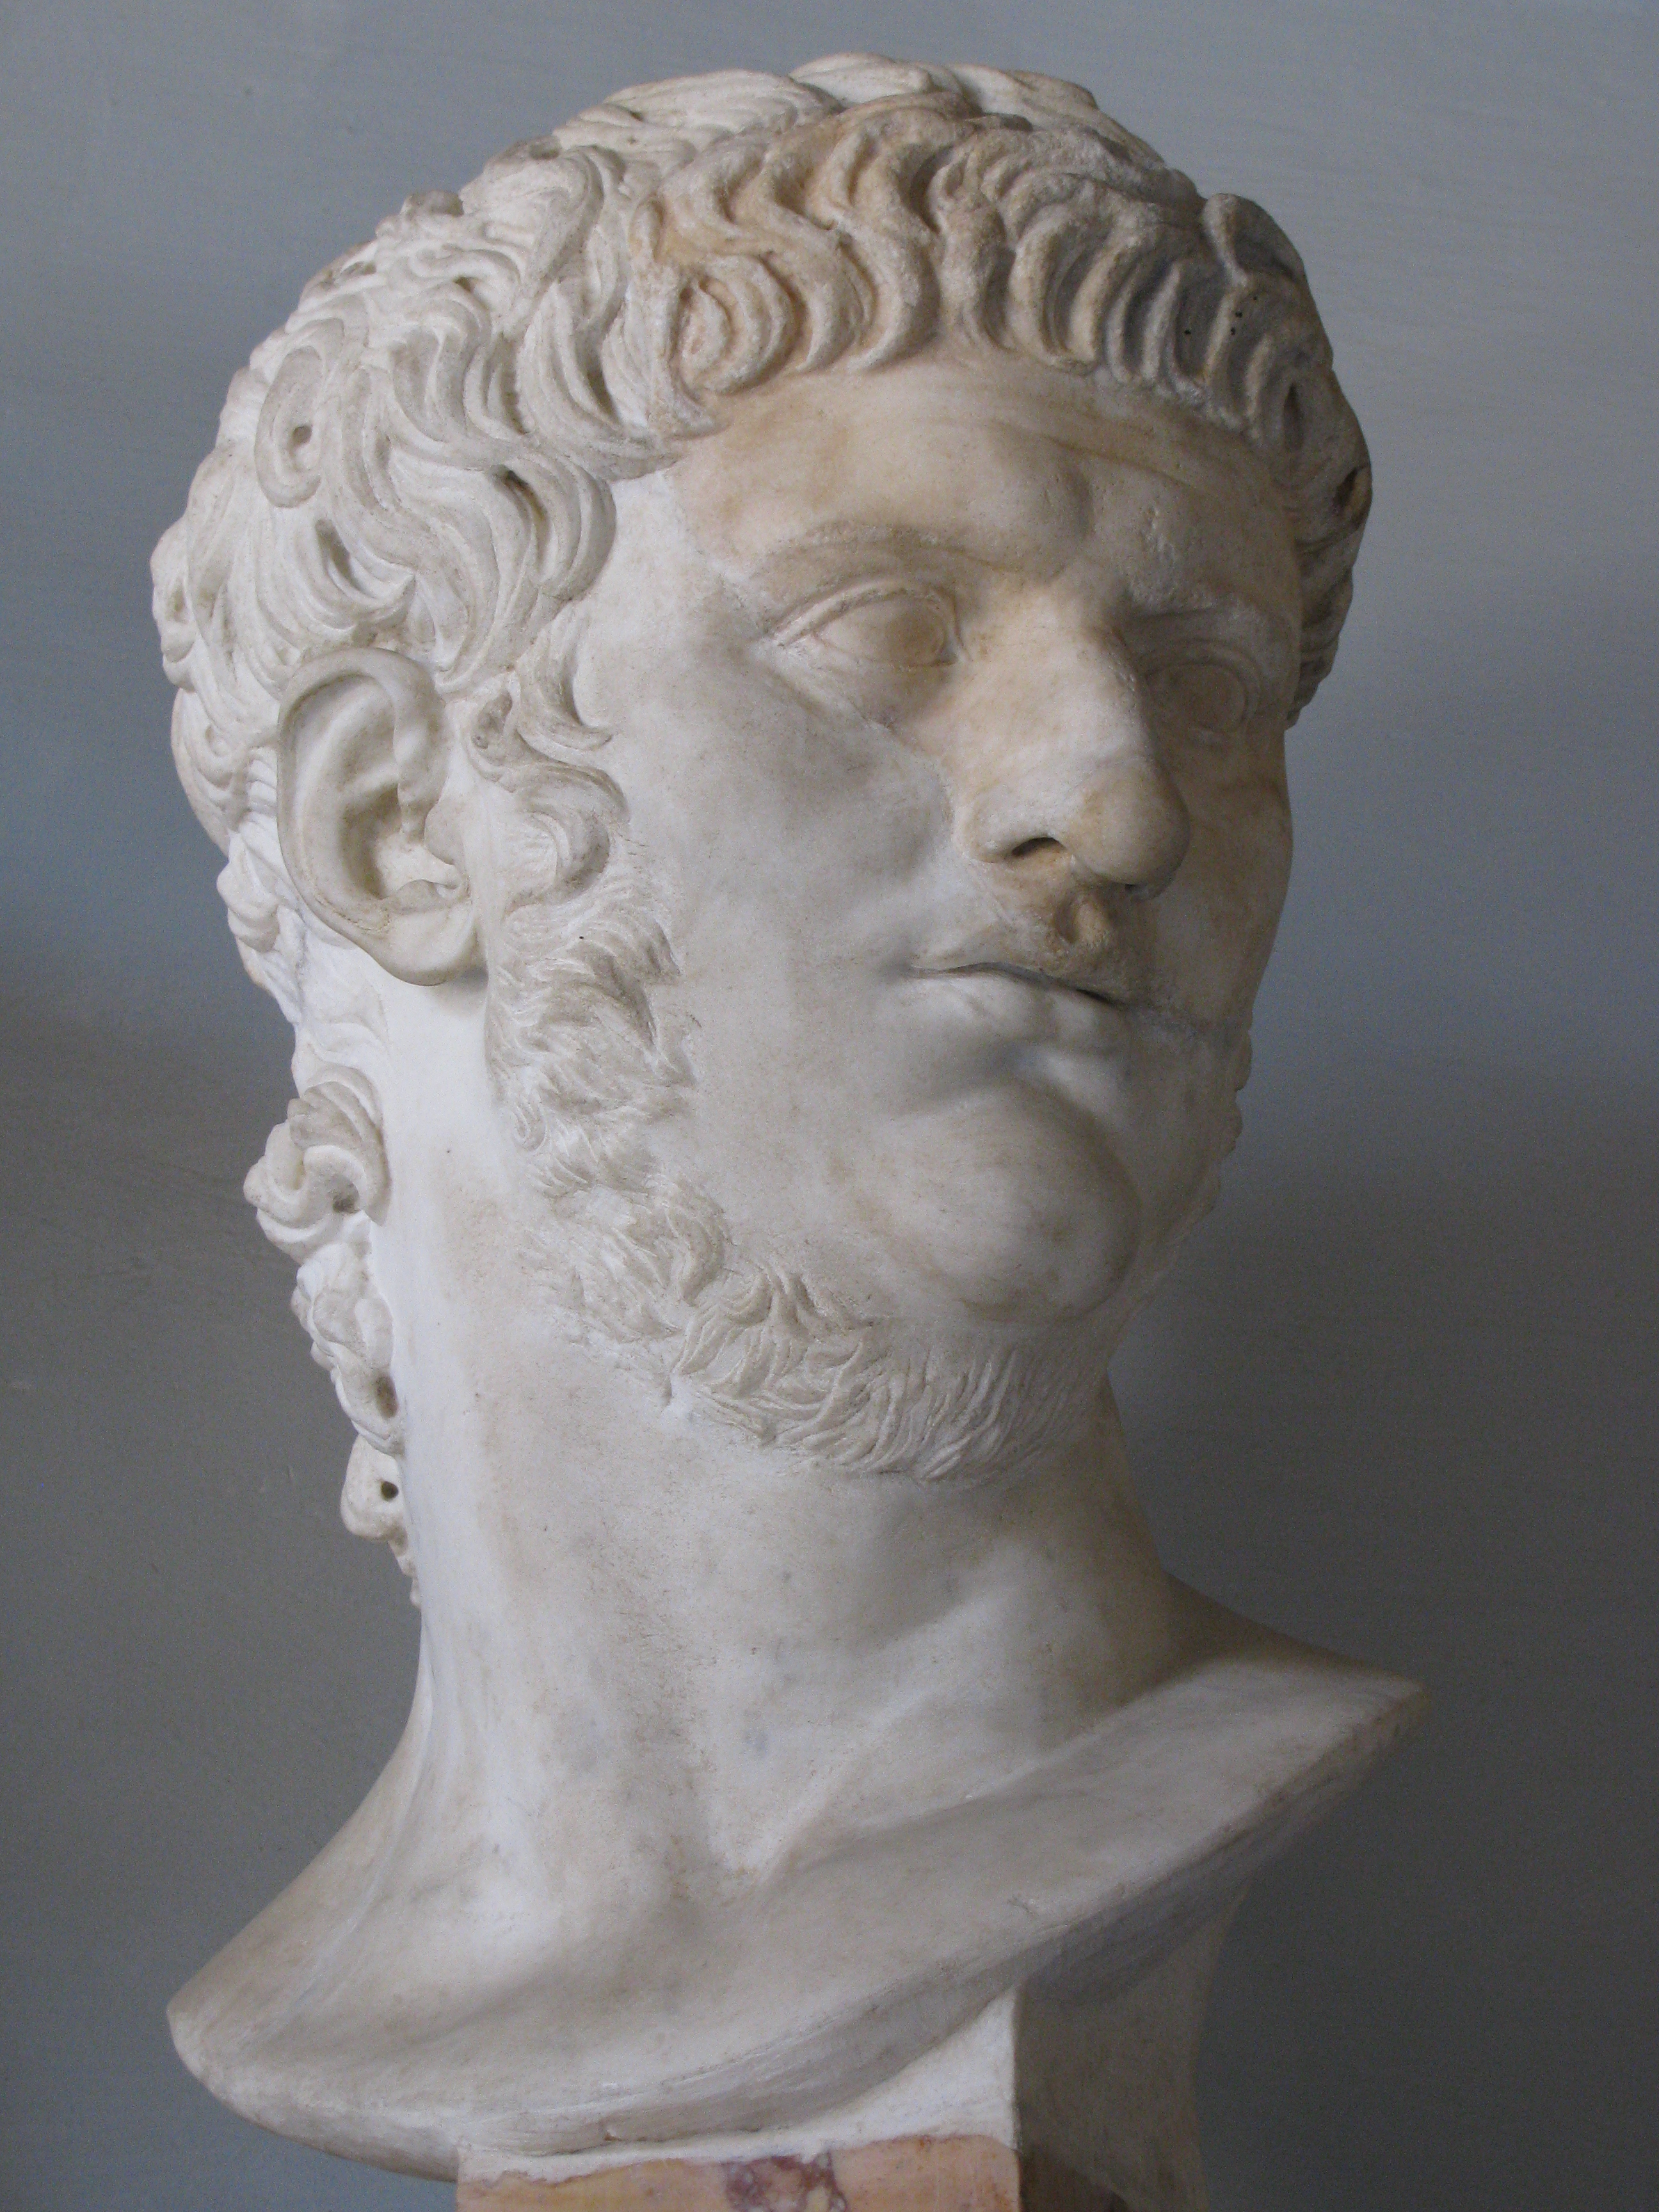 Bust of Nero in the Musei Capitolini, in Rome. Notice how the bottom row of his hair on the forehead comes out directly from the tips of row above it.